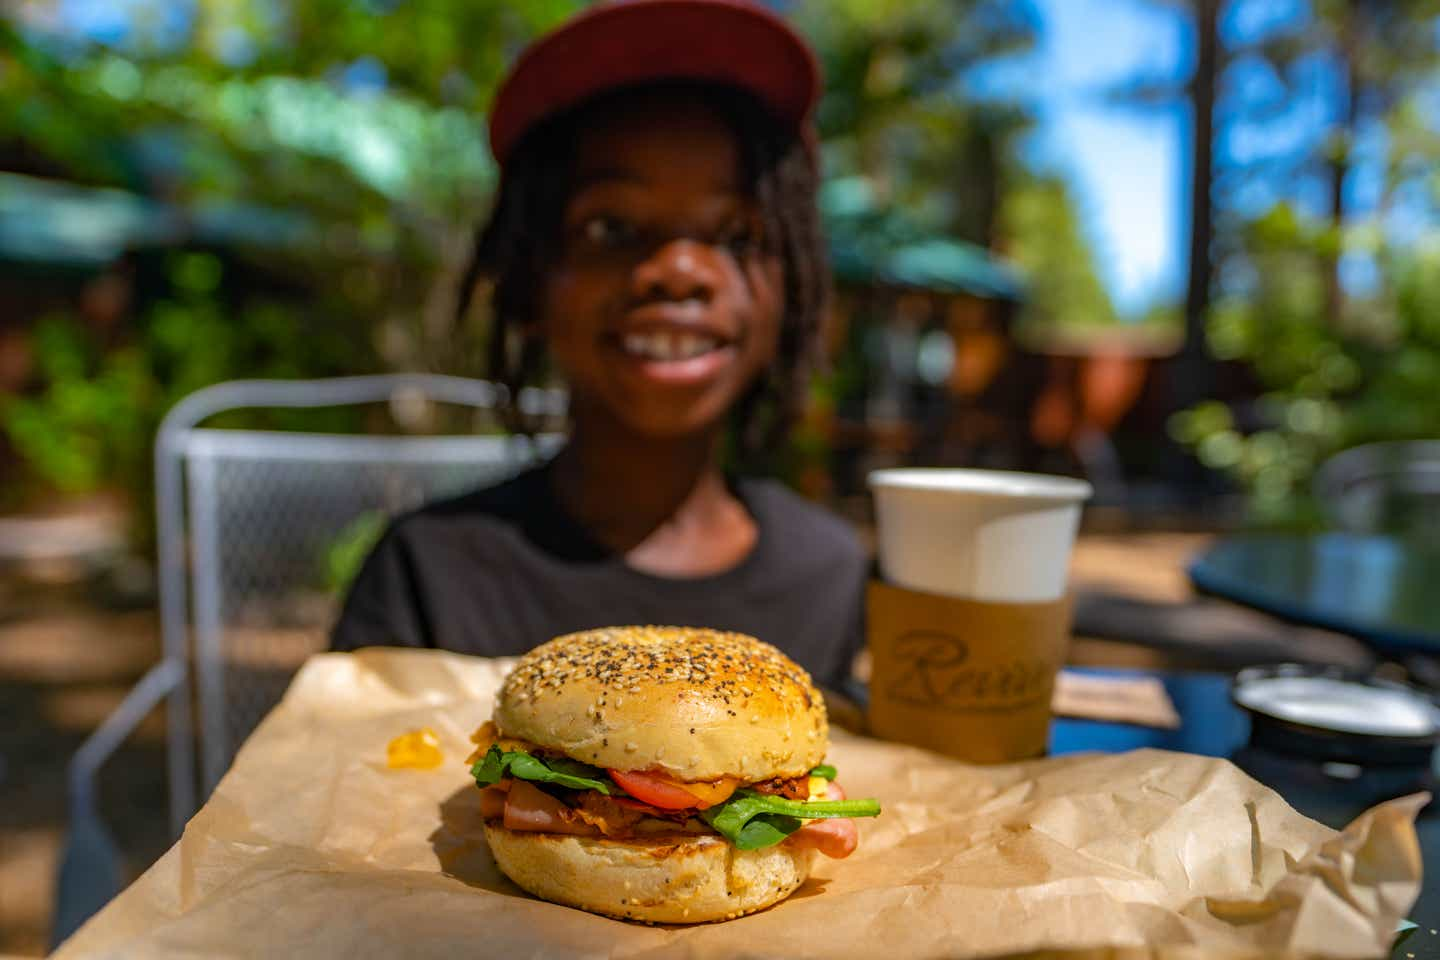 A breakfast sandwich and coffee and Karen's son smiling in the background.